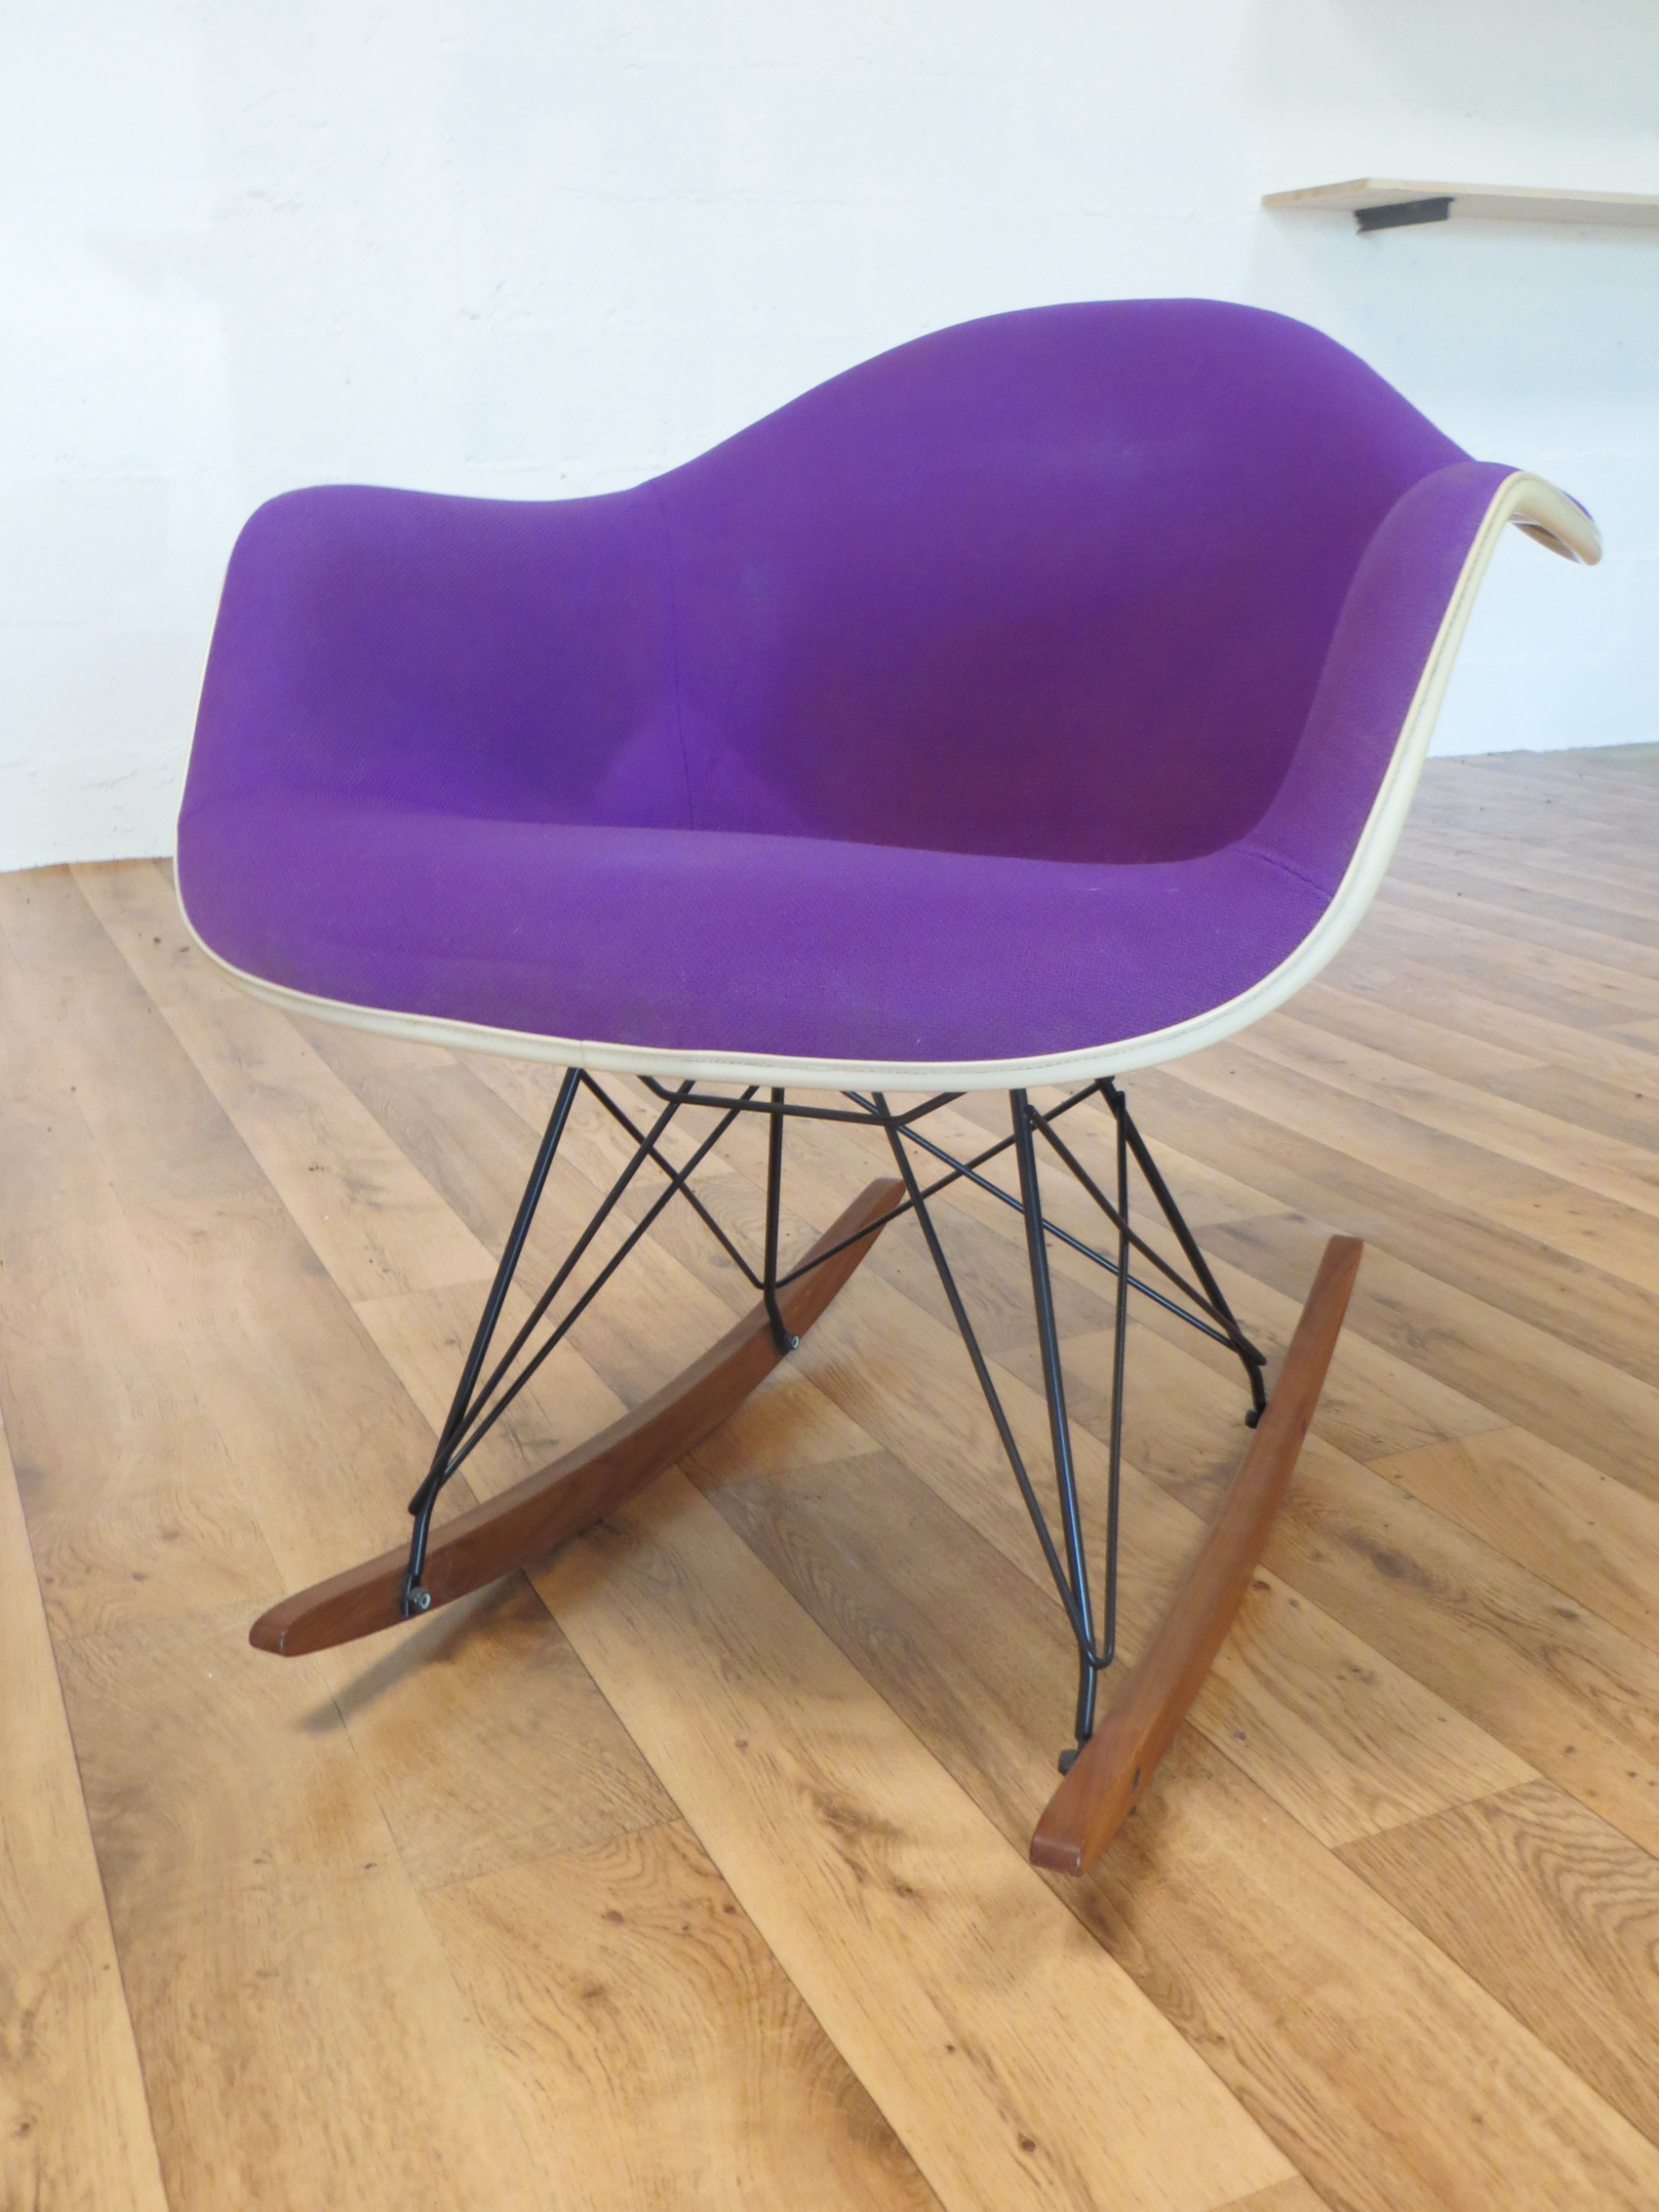 Fauteuils Charles Eames Fauteuil Rar De Charles And Ray Eames 1960 Magic Sixties